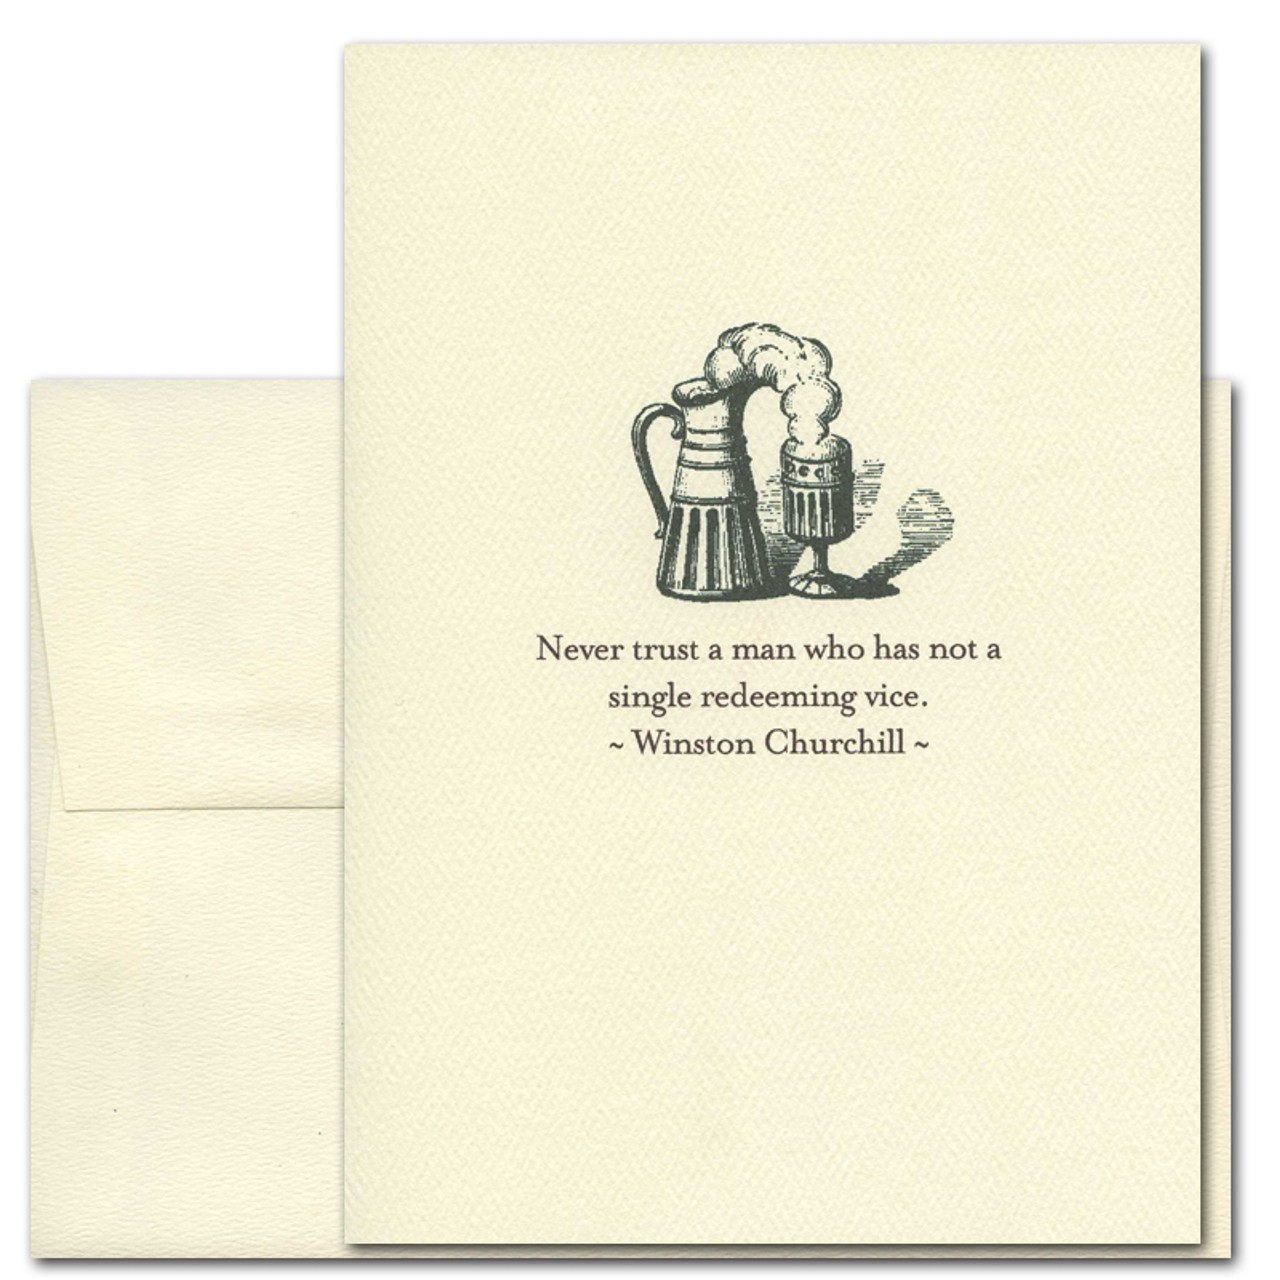 "Quotation Card ""Redeeming Vice: Churchill"" Cover shows old fashioned illustration of a pitcher and glass foaming with beer with a quote by Winston Churchill reading: ""Never trust a man who has not a single redeeming vice."""